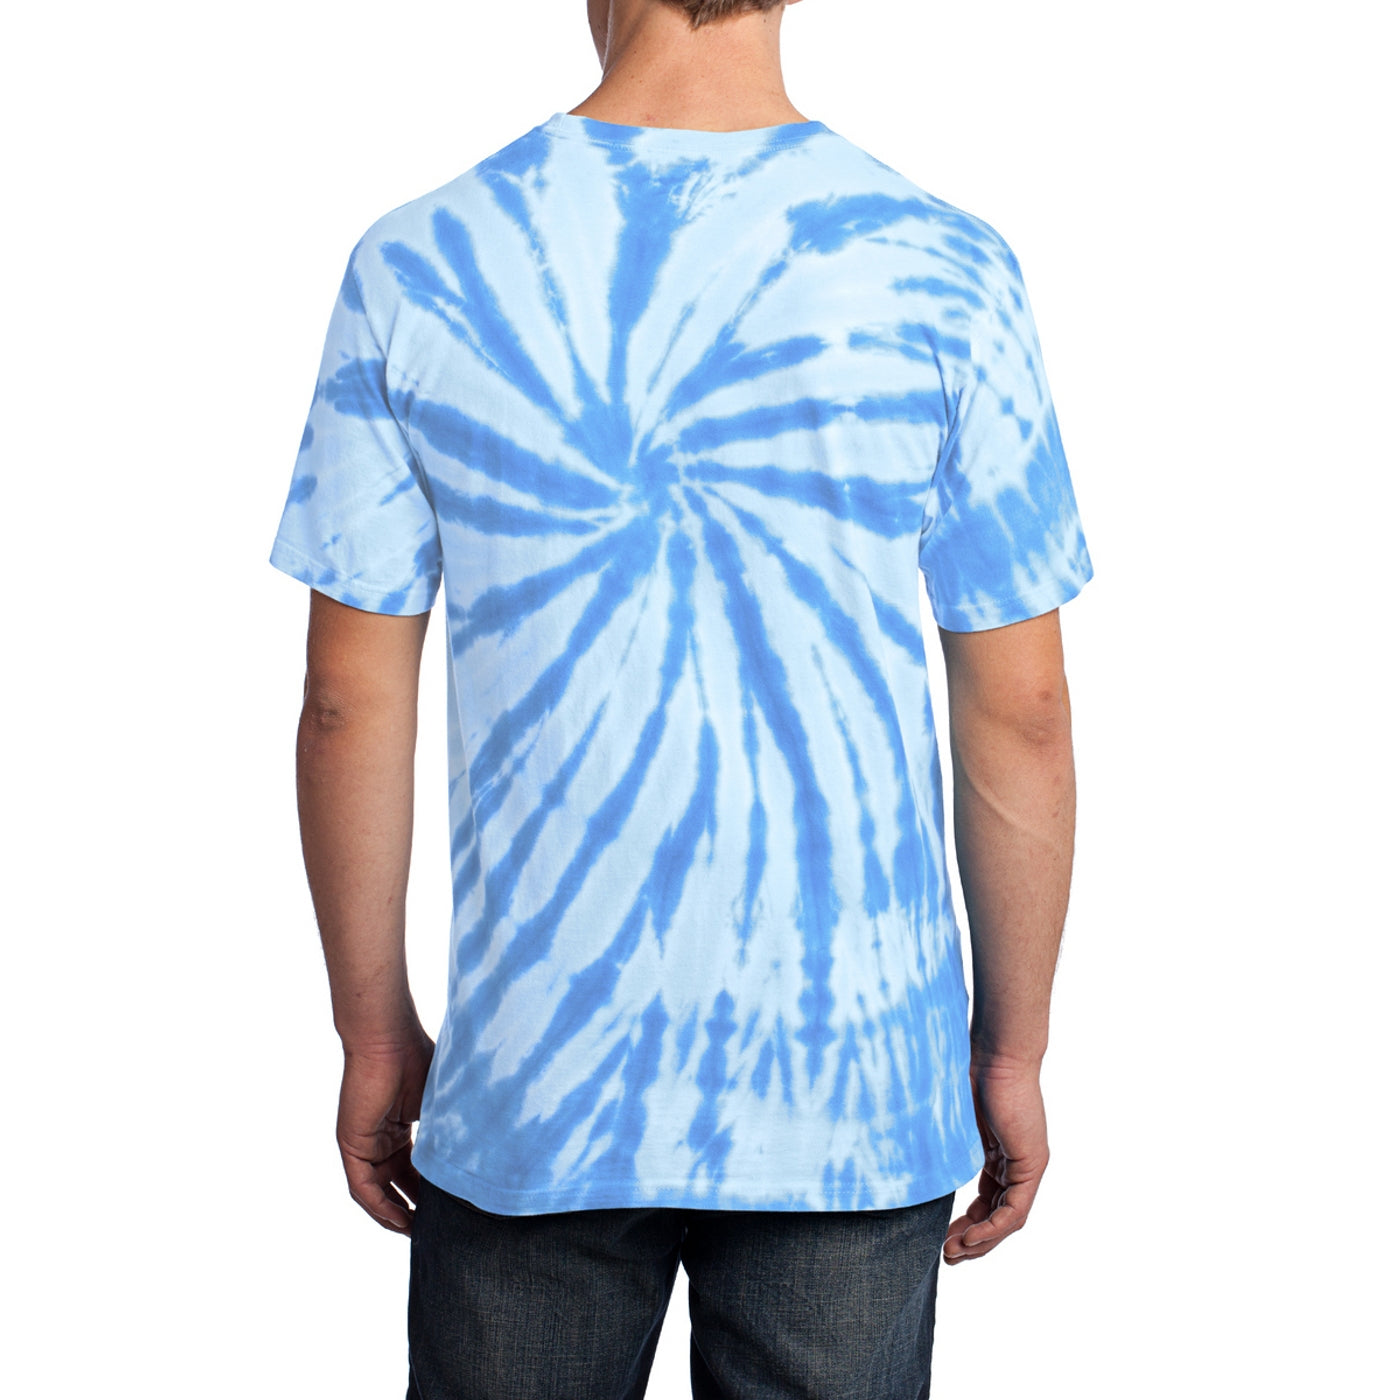 Men's Tie-Dye Tee - Light Blue - Back